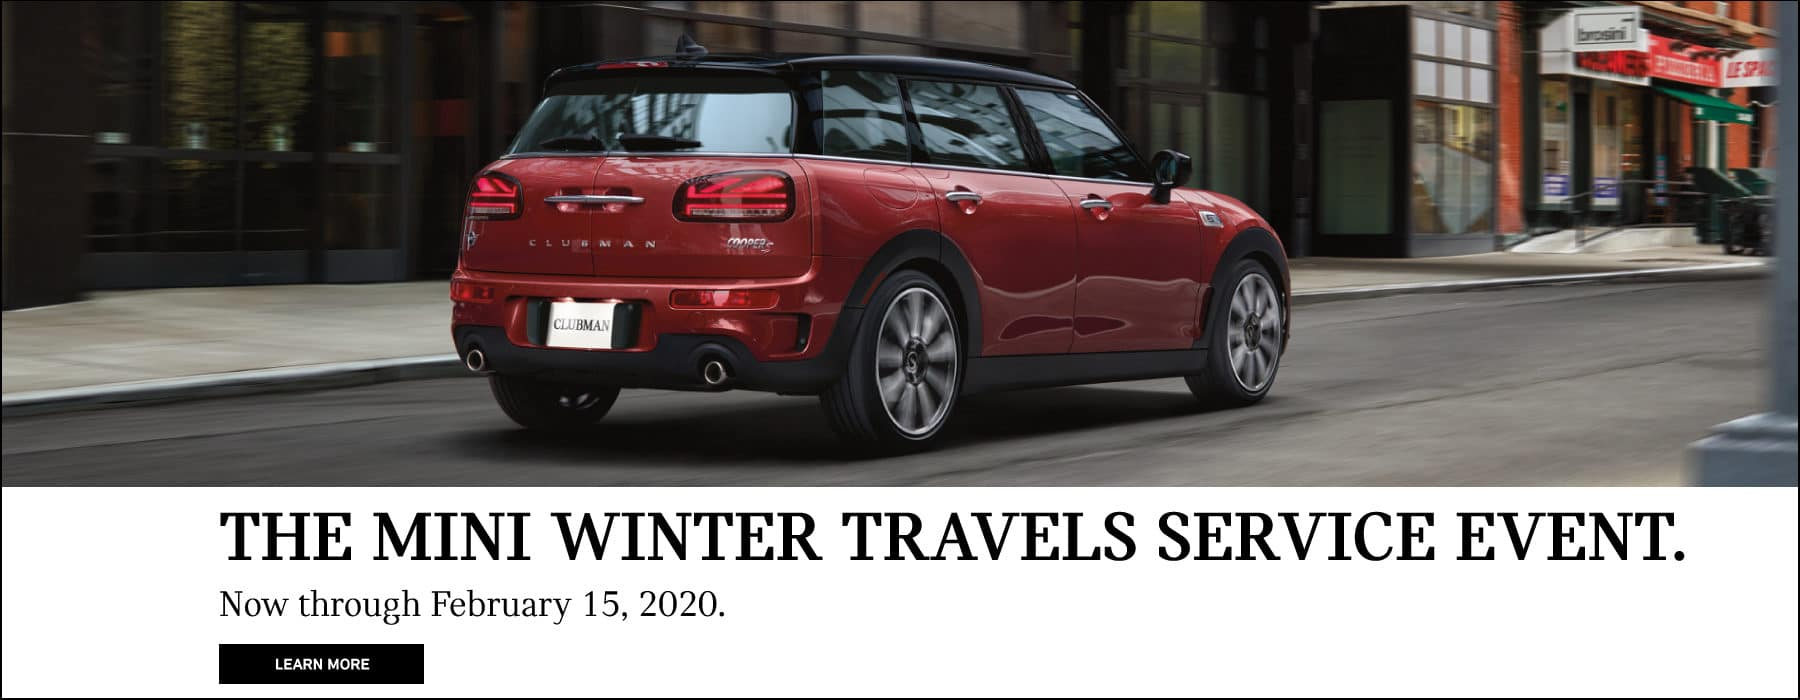 The MINI Winter Travels Service Event. See dealer for complete details. Red MINI Cooper S Countryman driving on city road.